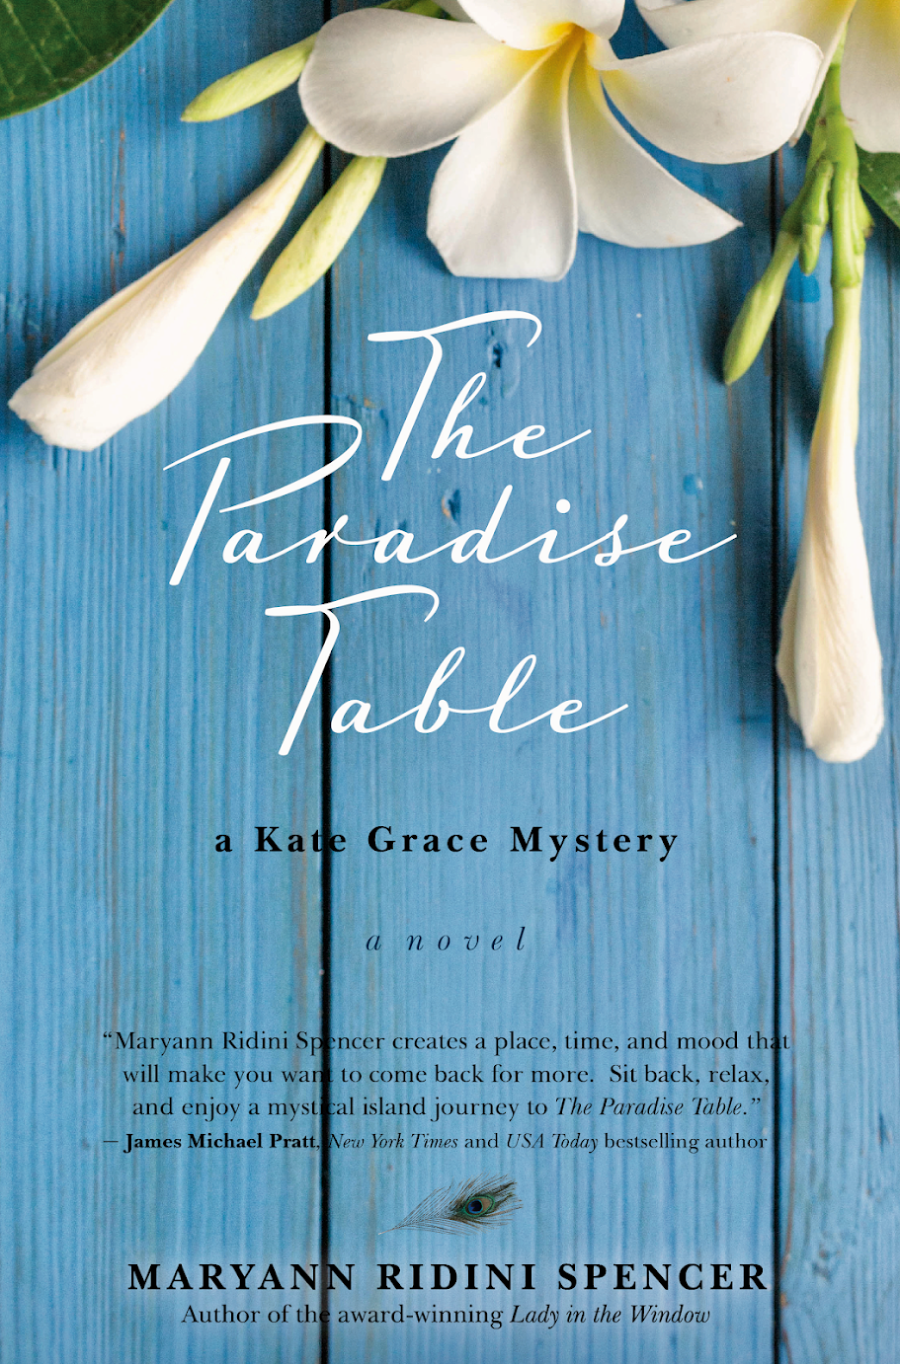 The Paradise Table – PRE-ORDER TODAY!